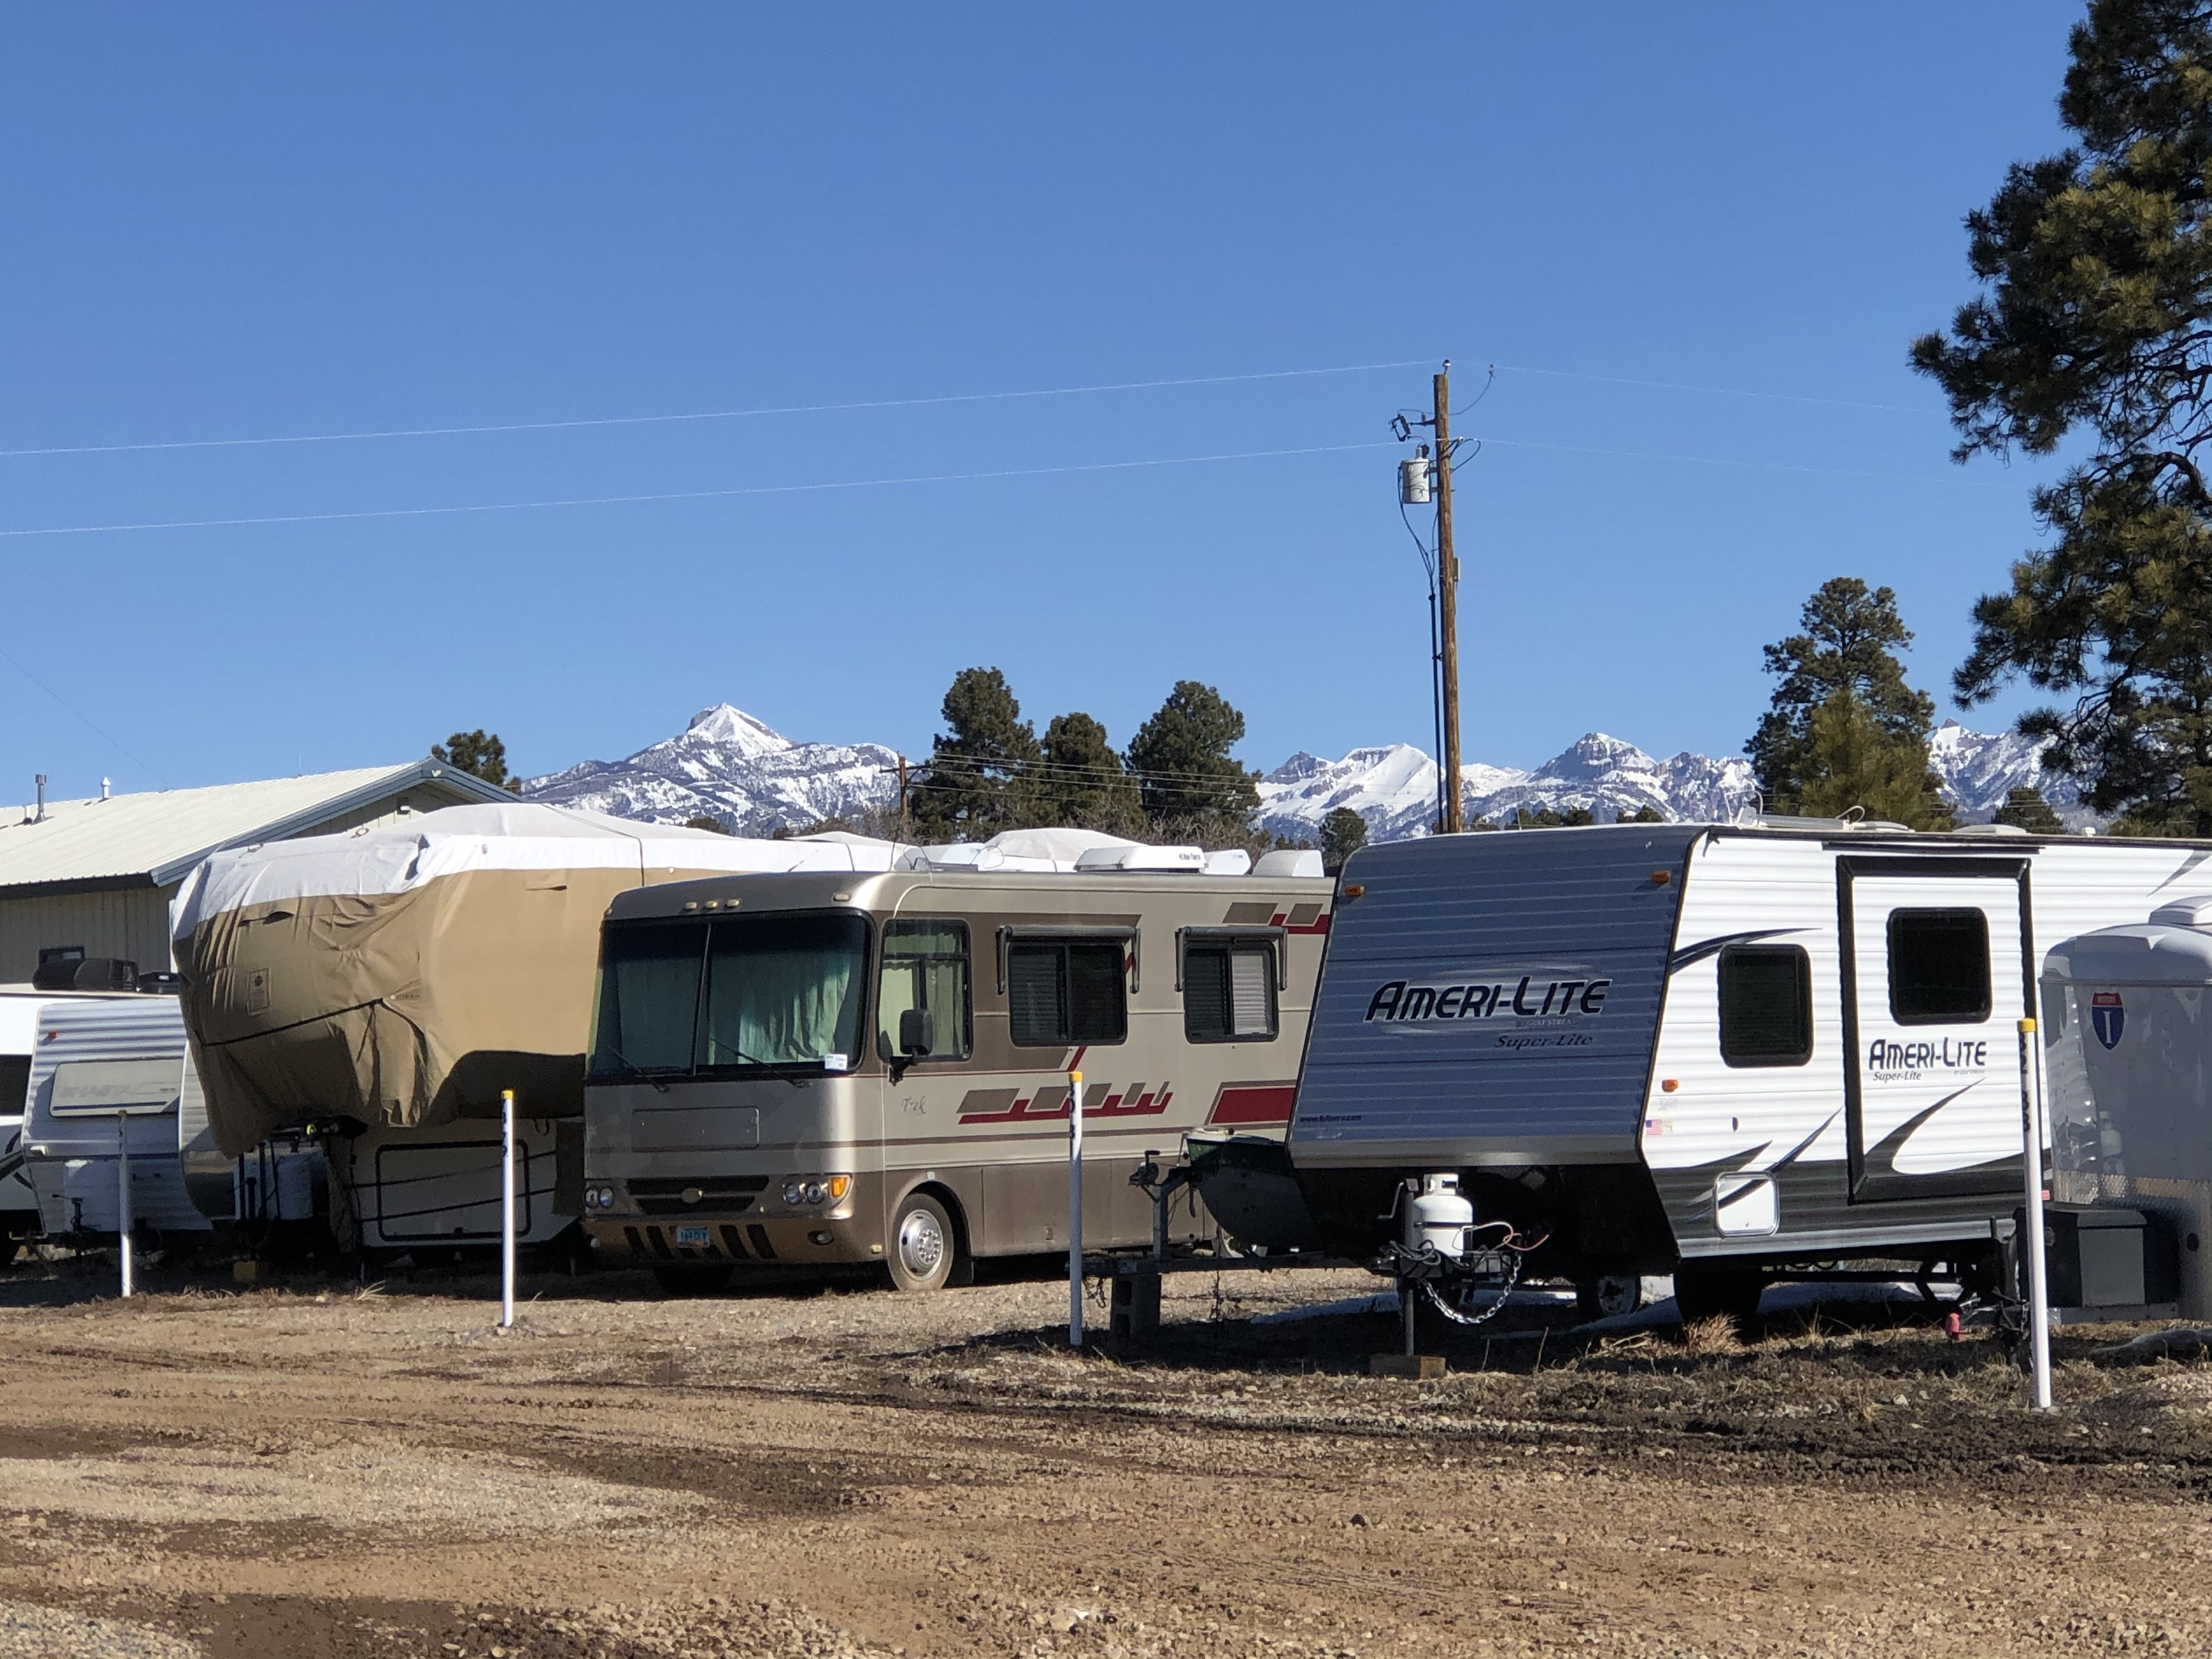 covered outside storagecovered rv storage mini outside storage facility pagosa springs storage lockers storage units moving supplies boxes mini storage self storage tape moving tape trailer rentals rv parking covered rv parking rental car parking uhaul rentals dollies